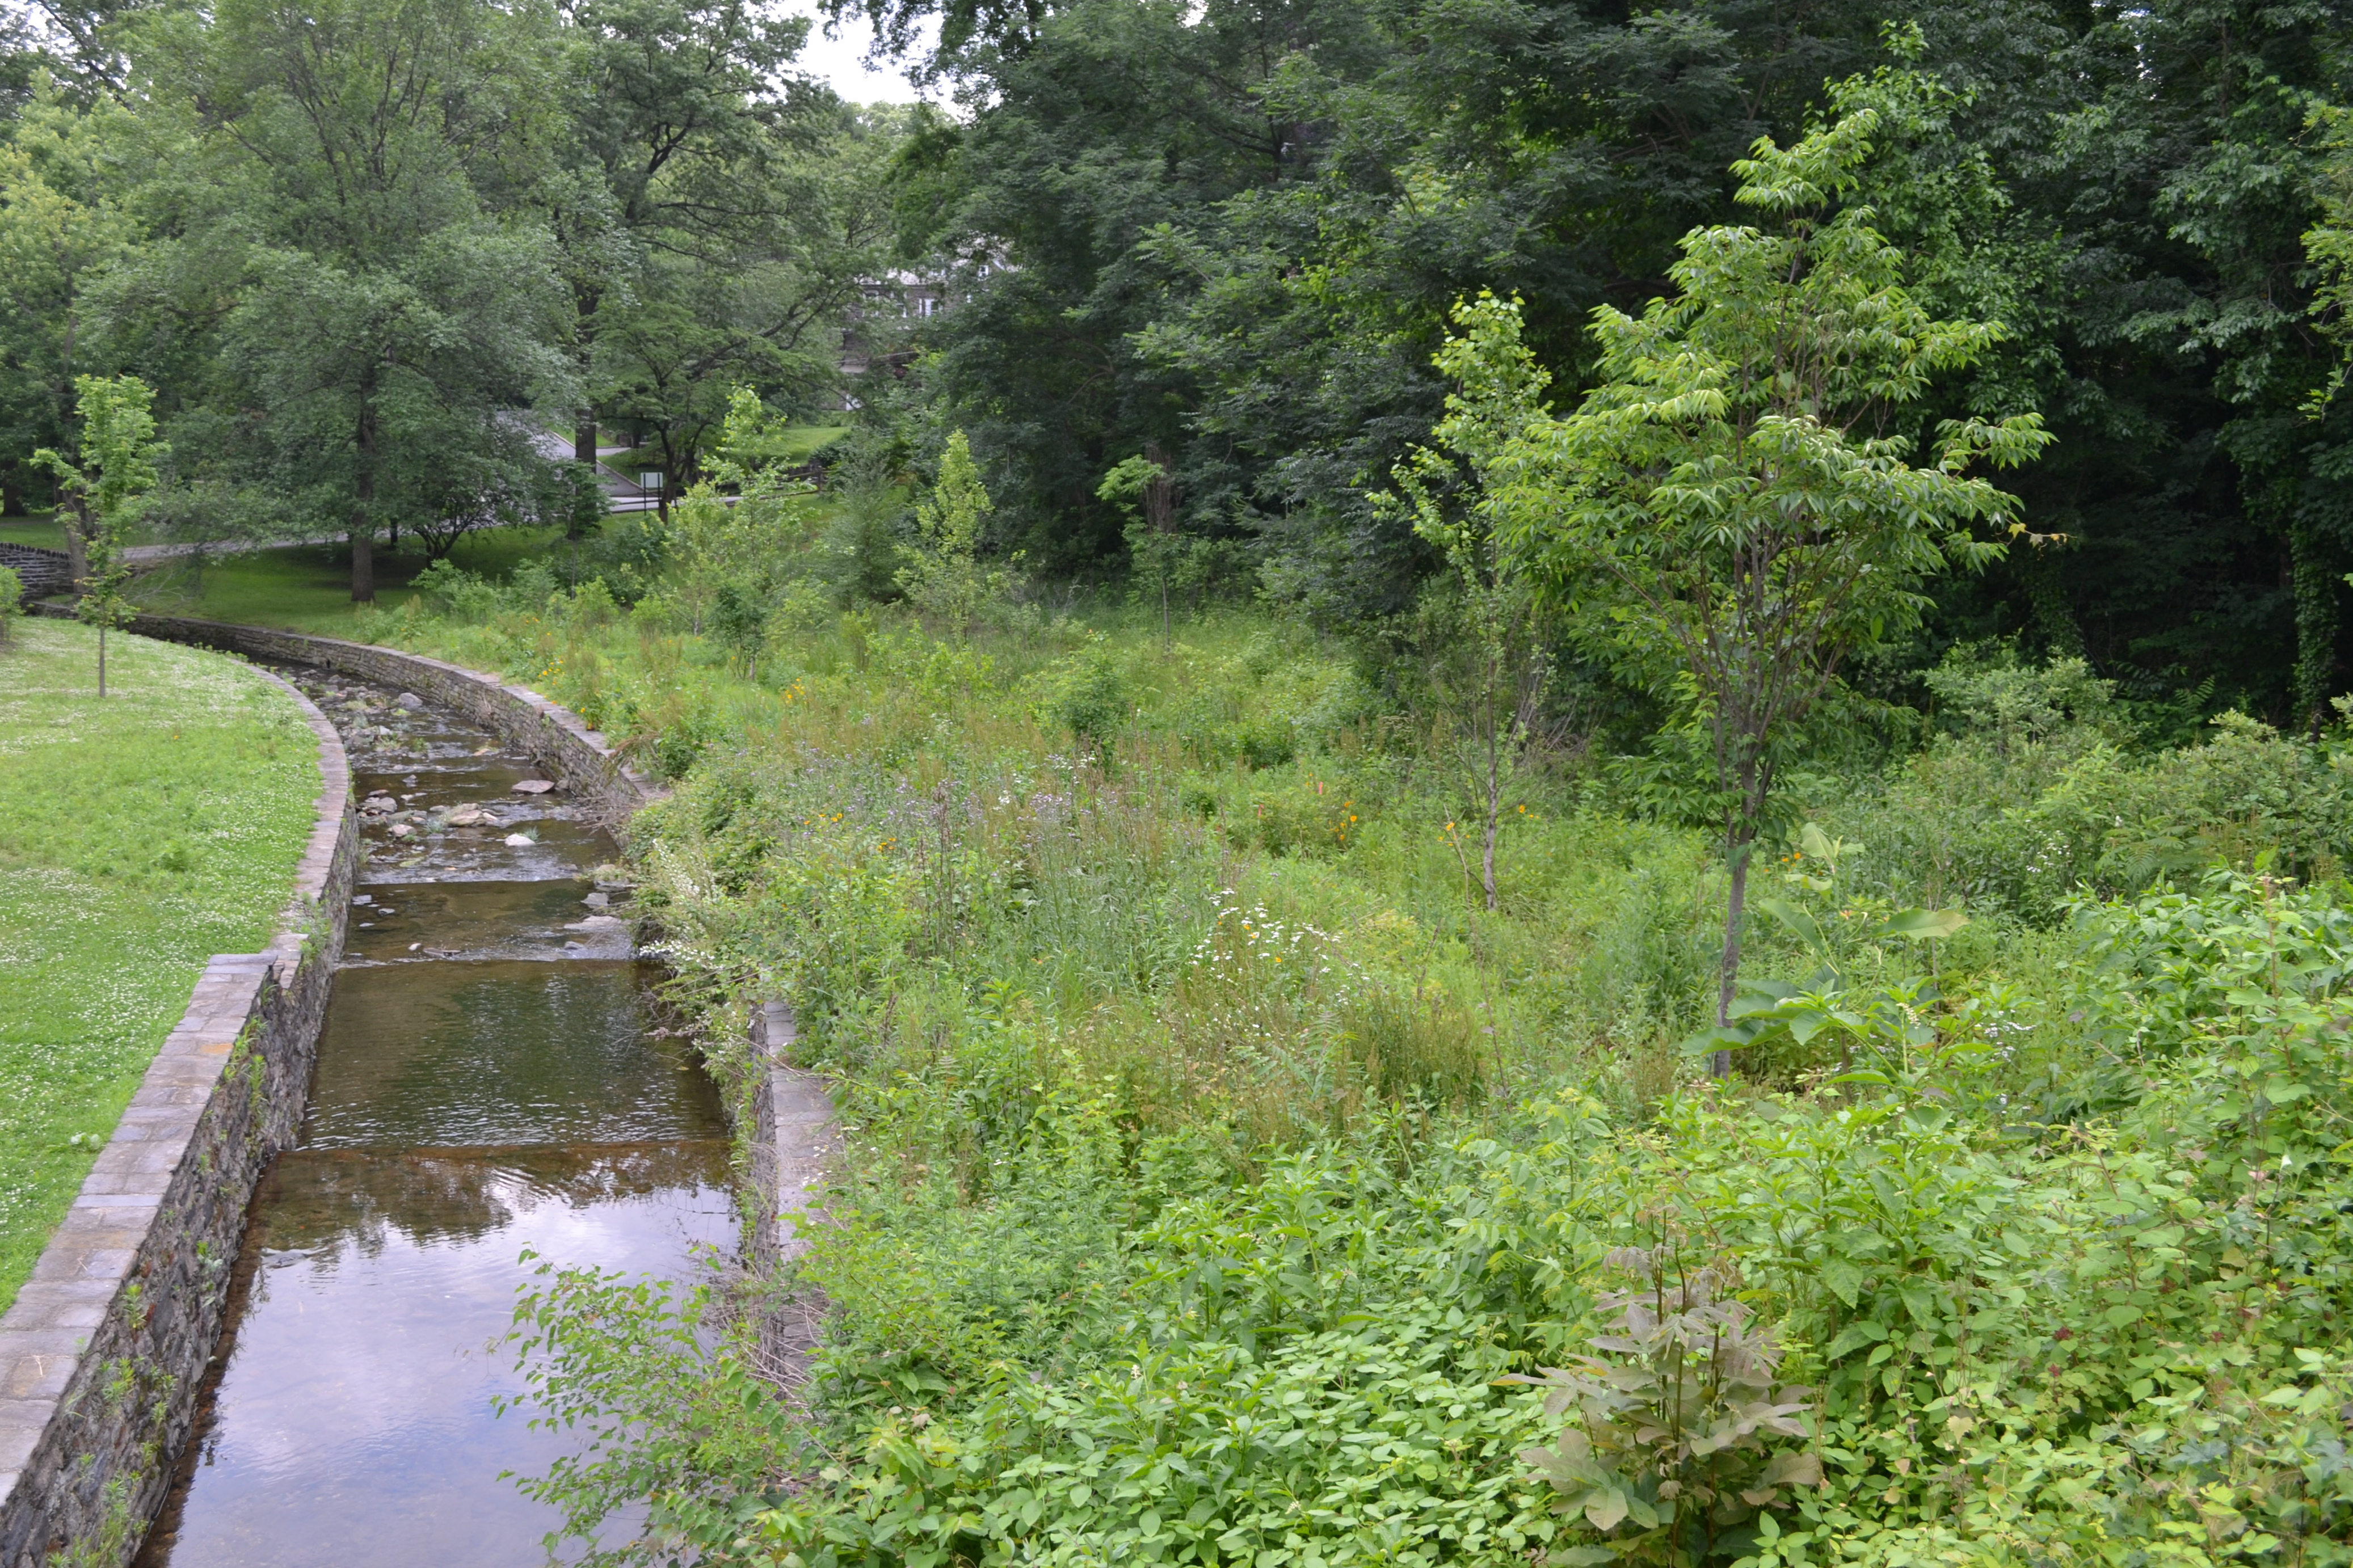 Vine Creek intersects with the trail at several points before it feeds into the Schuylkill River